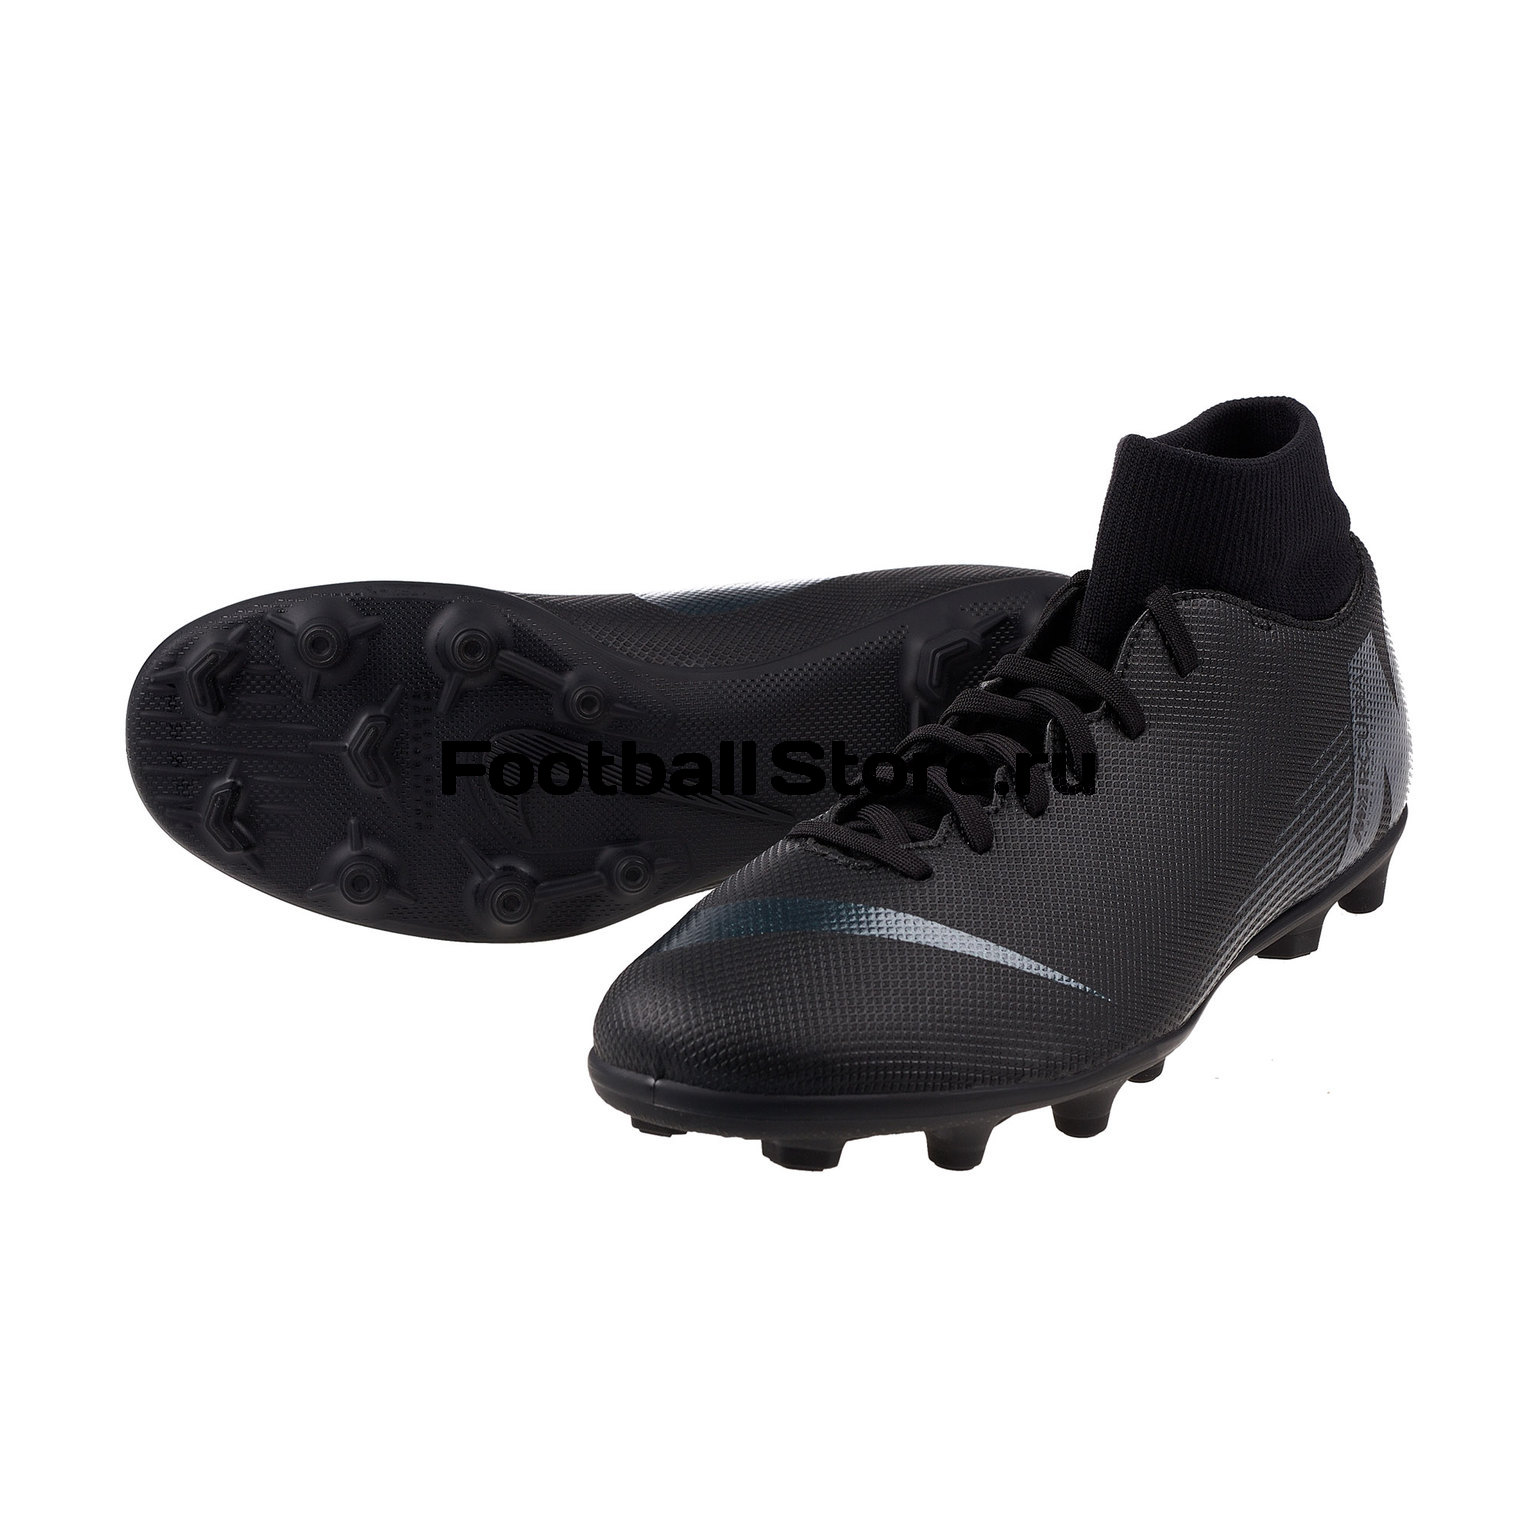 Бутсы Nike SuperFly 6 Club FG/MG AH7363-001 бутсы nike superfly 6 elite fg ah7365 060